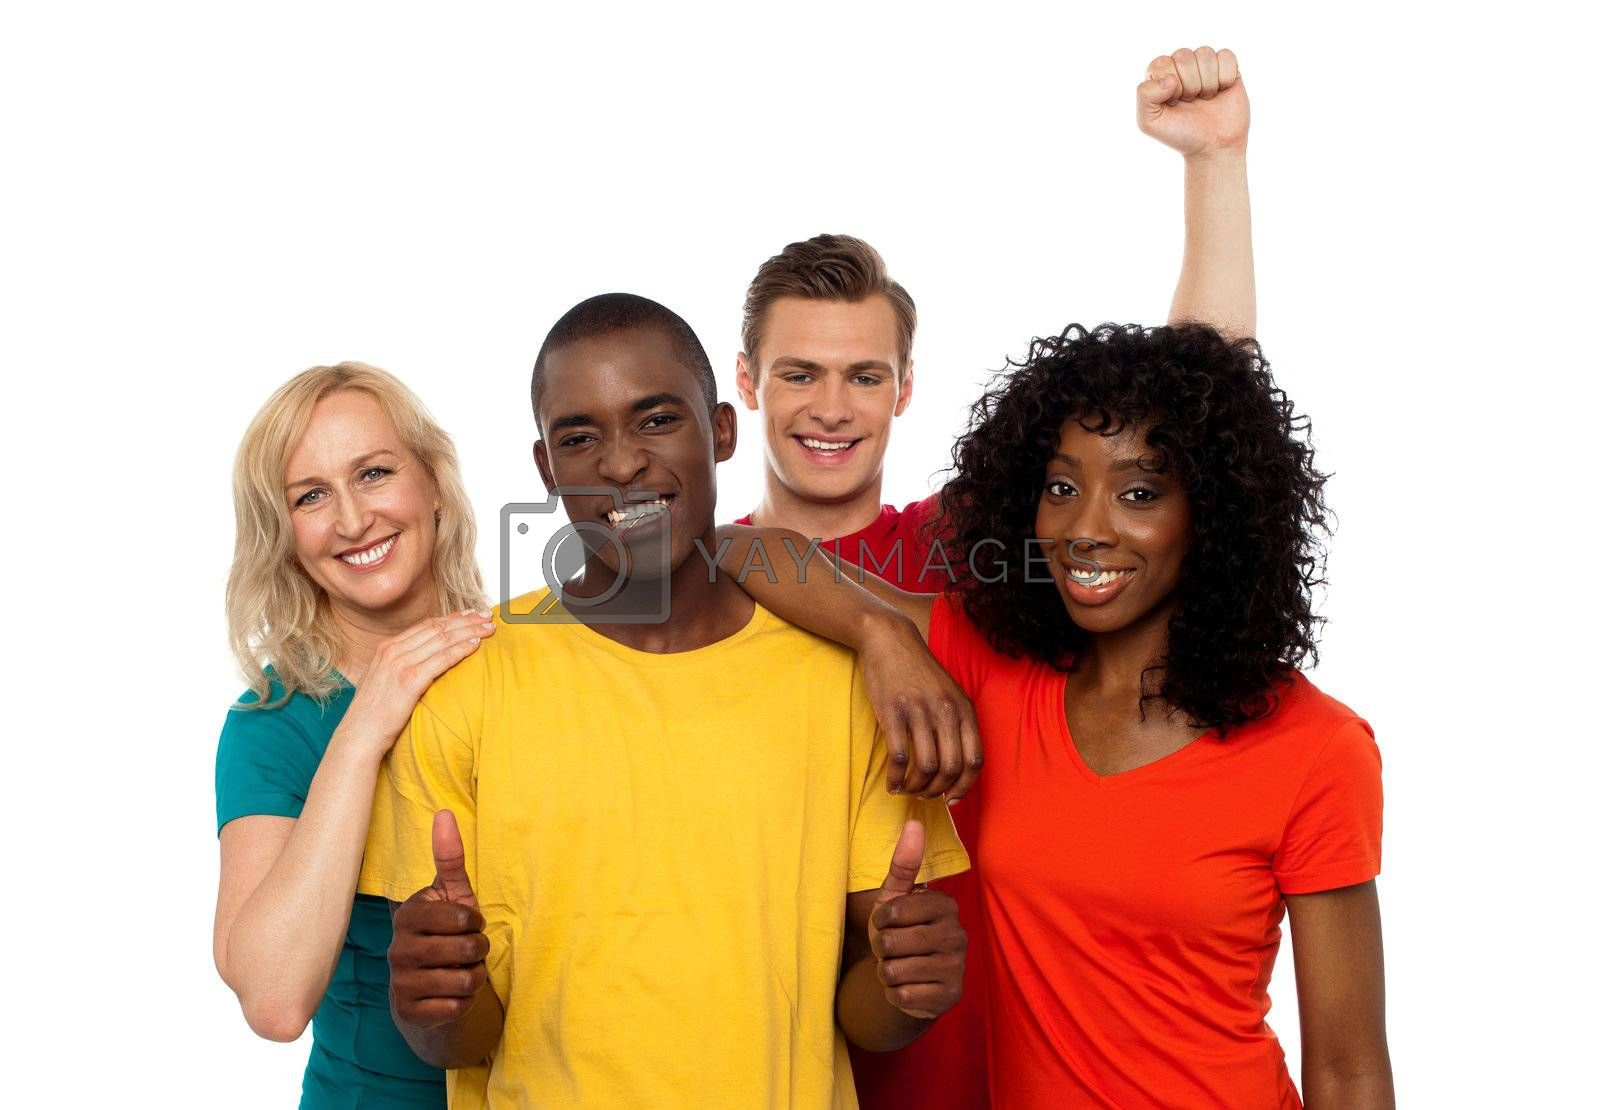 Group of friends enjoying themselves isolated against white background